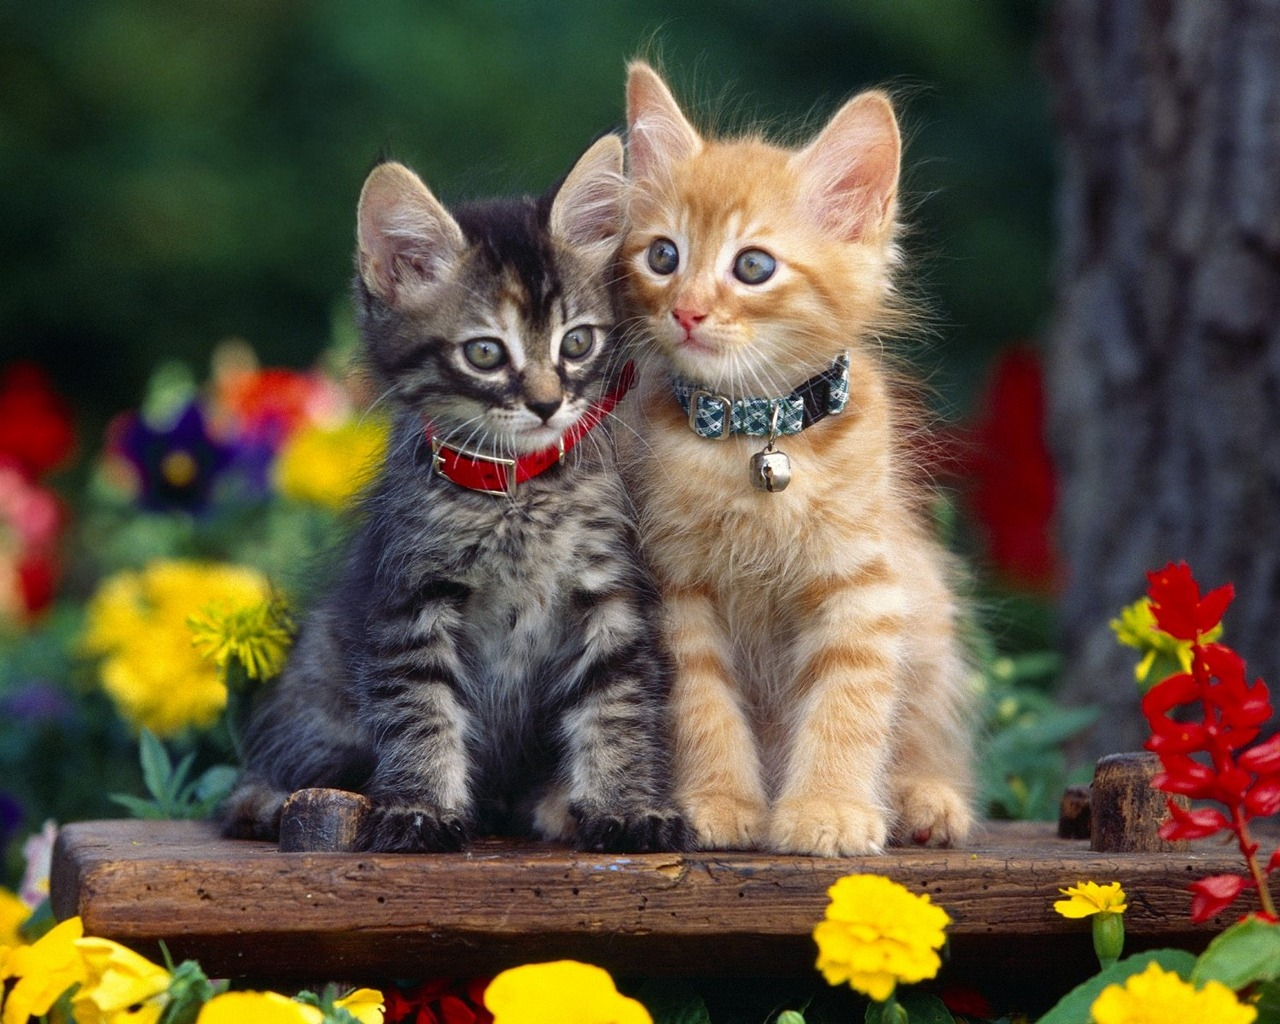 Very Cute Cat Images